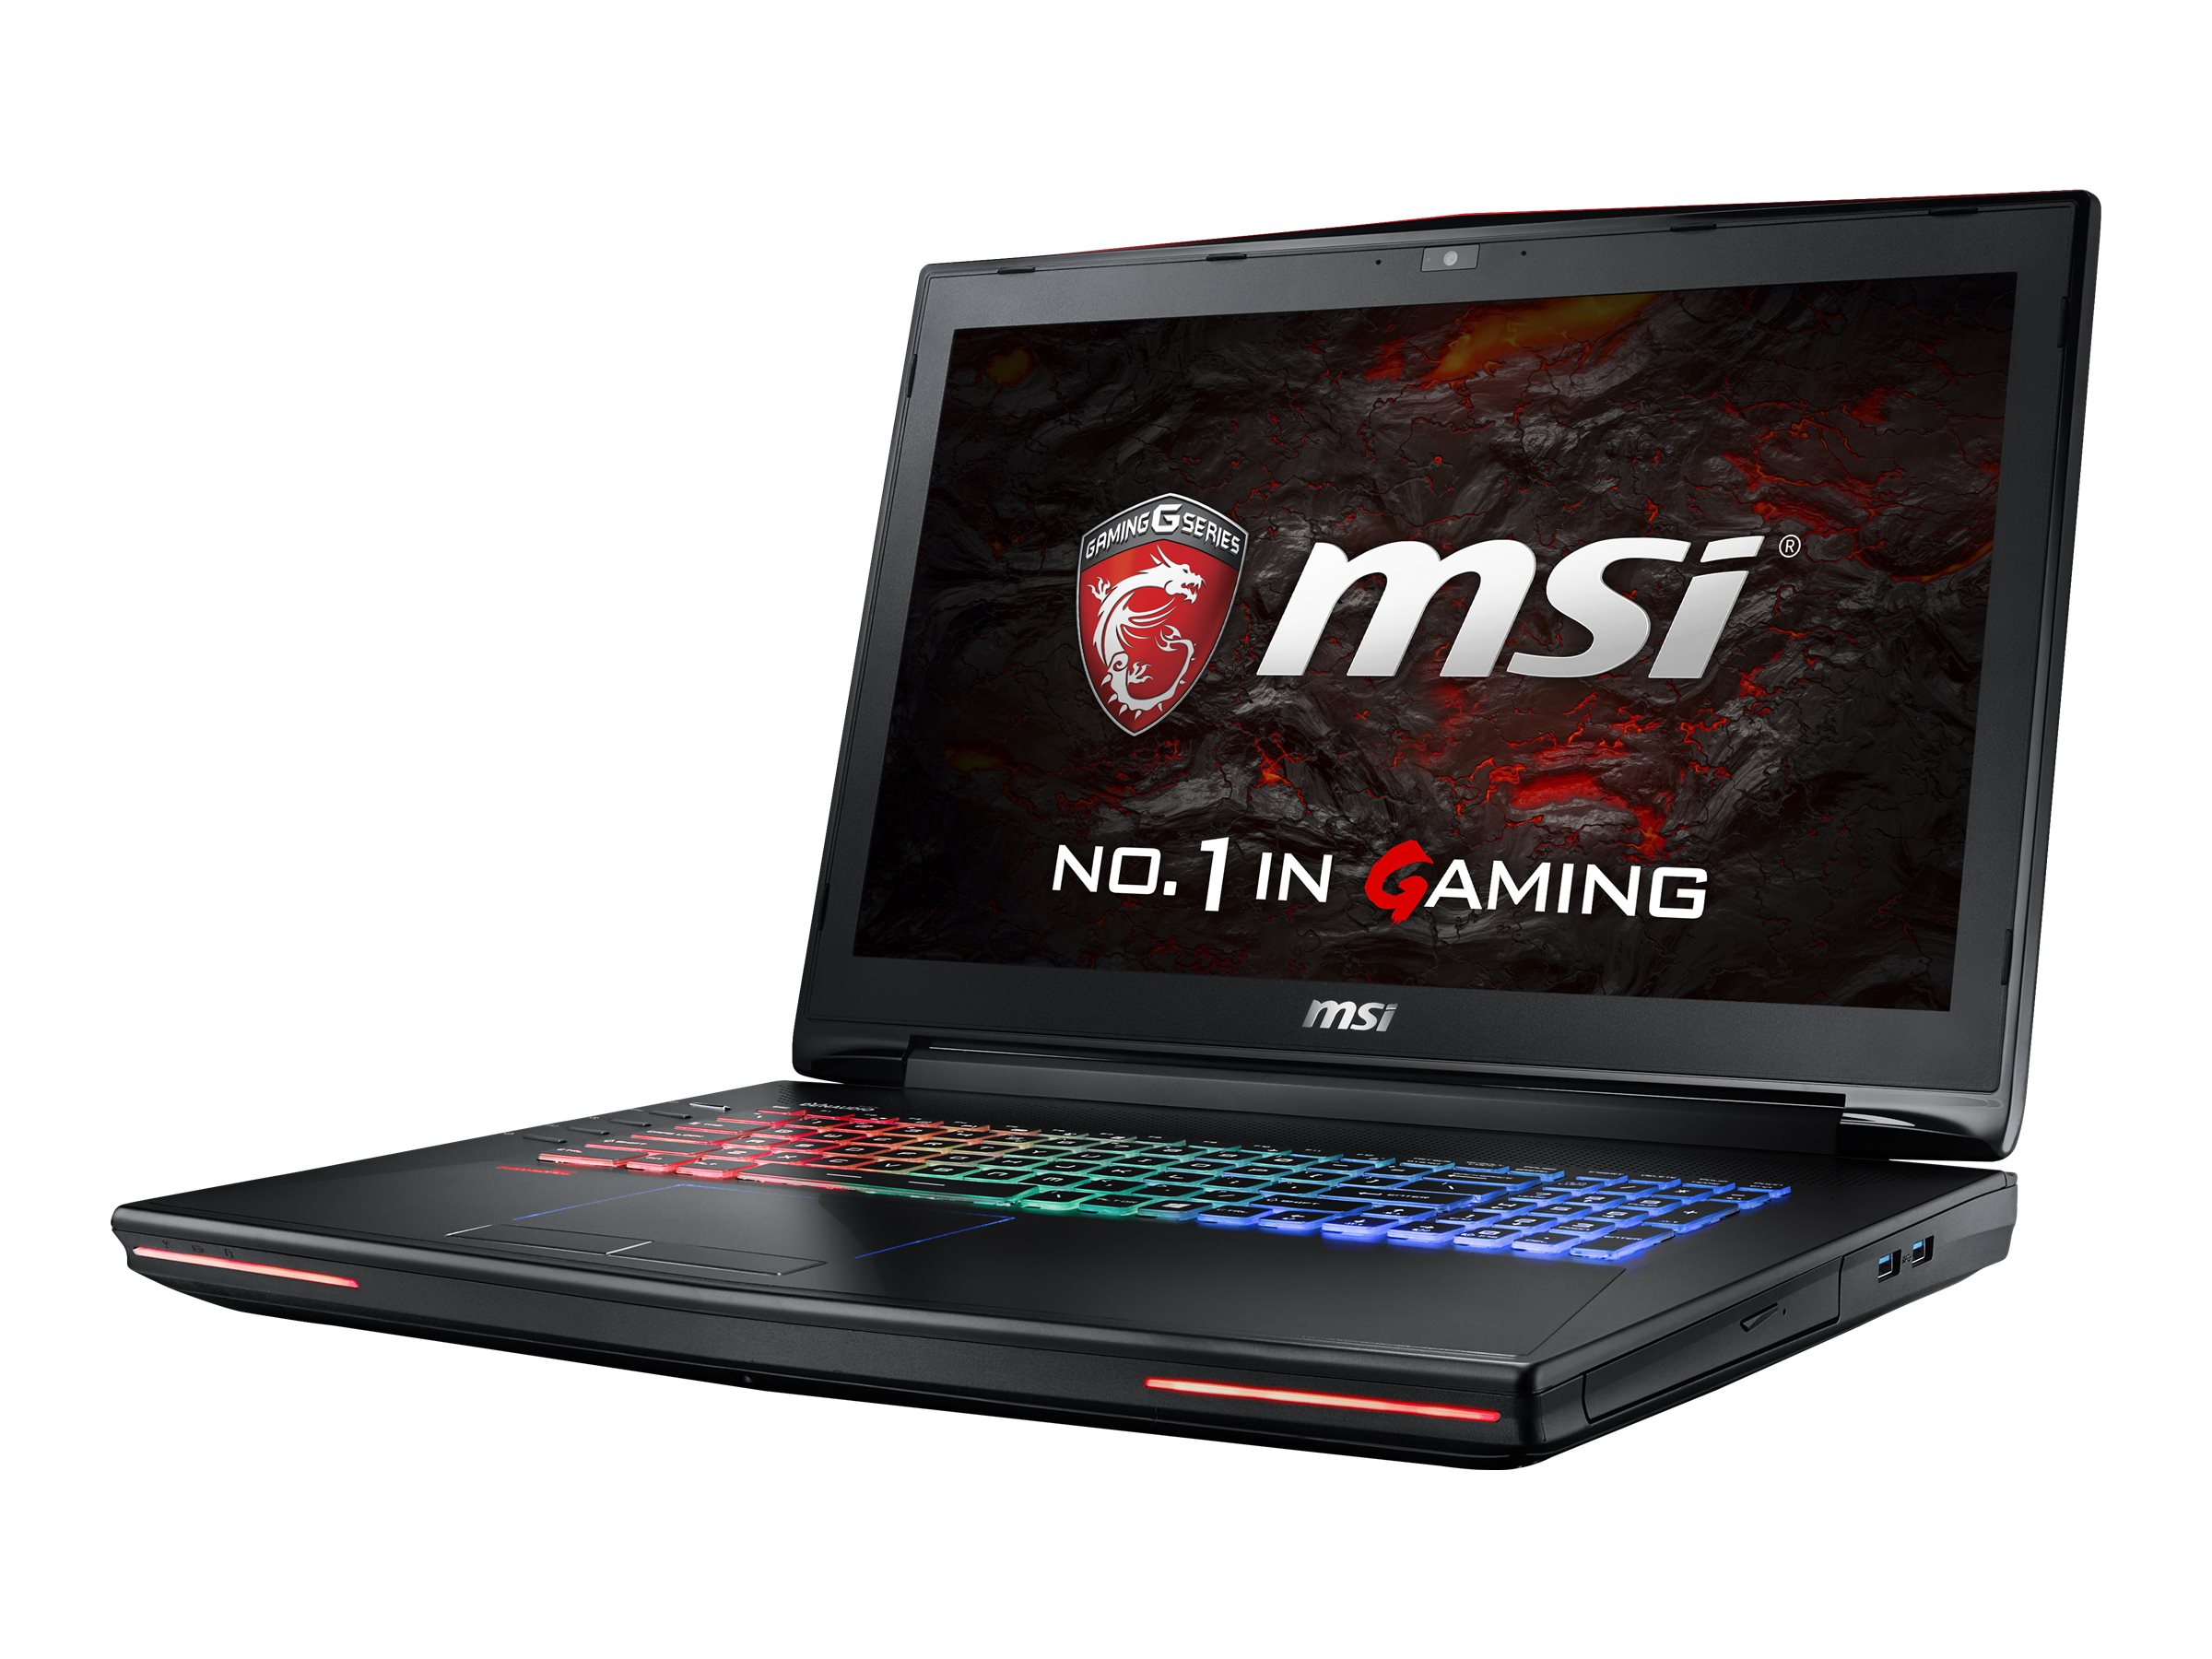 MSI GT72VR Dominator-286 Core i7-6700 2.6GHz 16GB 1TB DVD SM ac GNIC BT WC GTX 1060 17.3 FHD W10